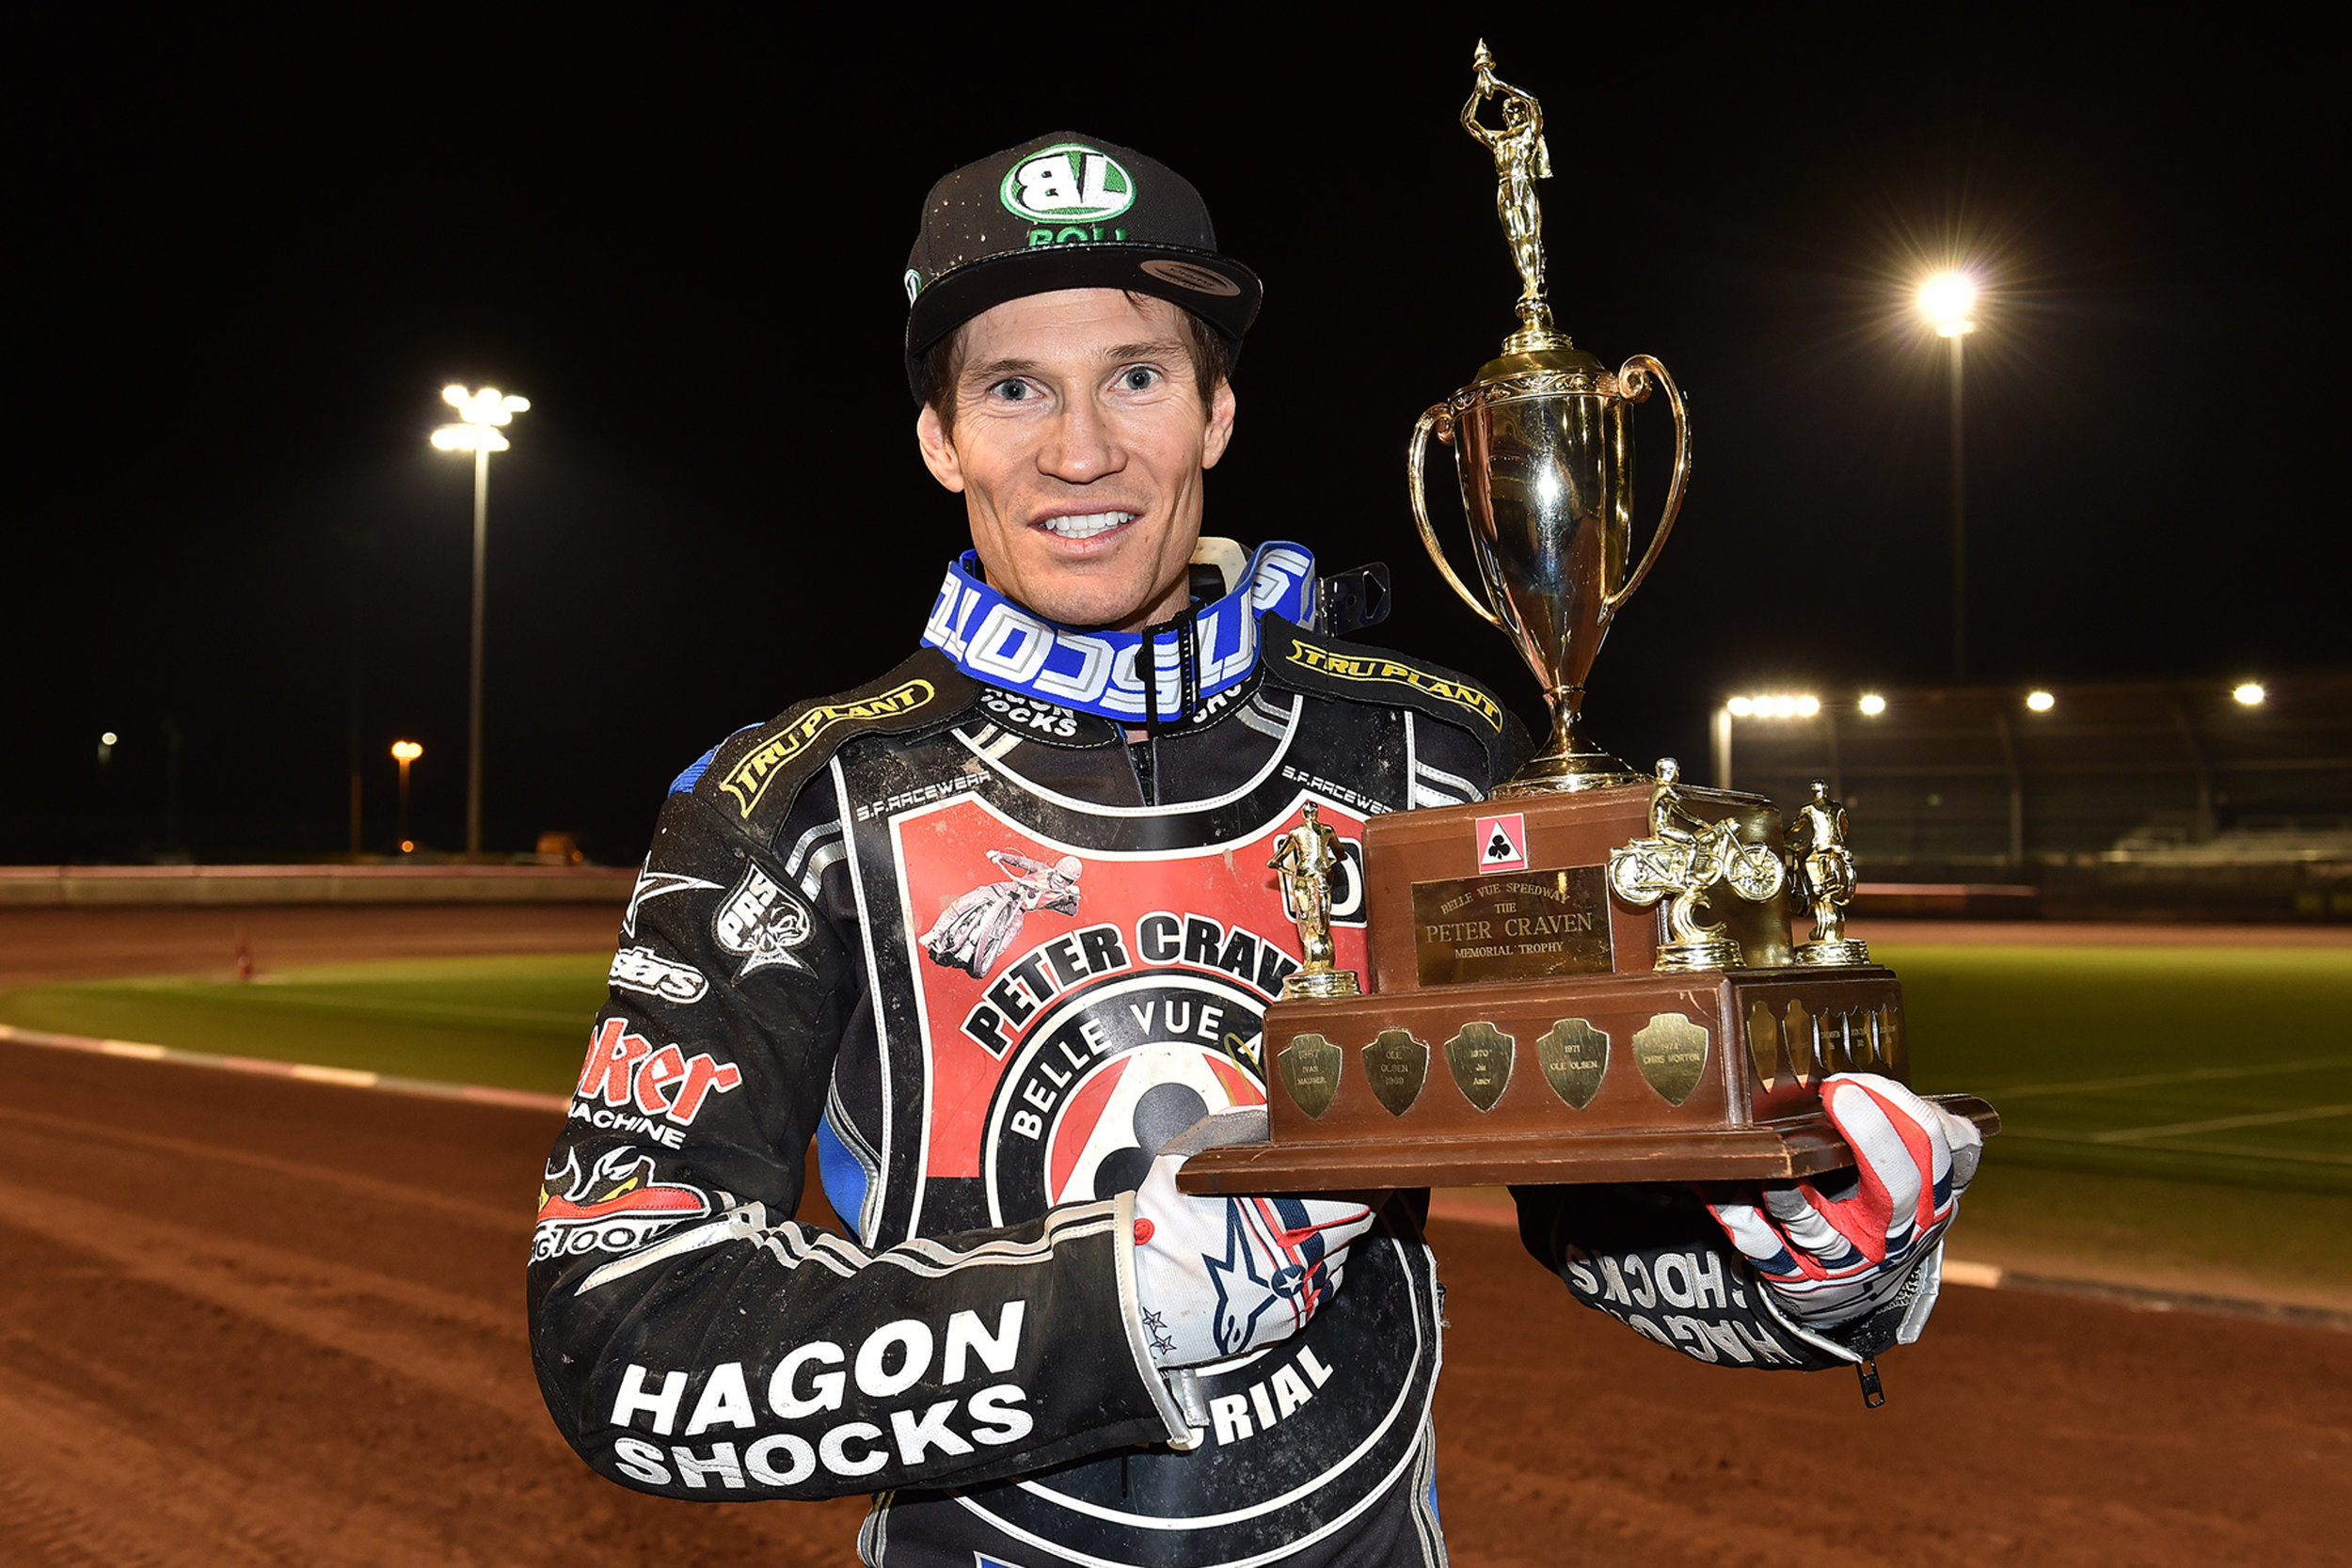 Peter Craven Memorial winner Jason Doyle, the first rider since Jason Crump to take back-to-back victories